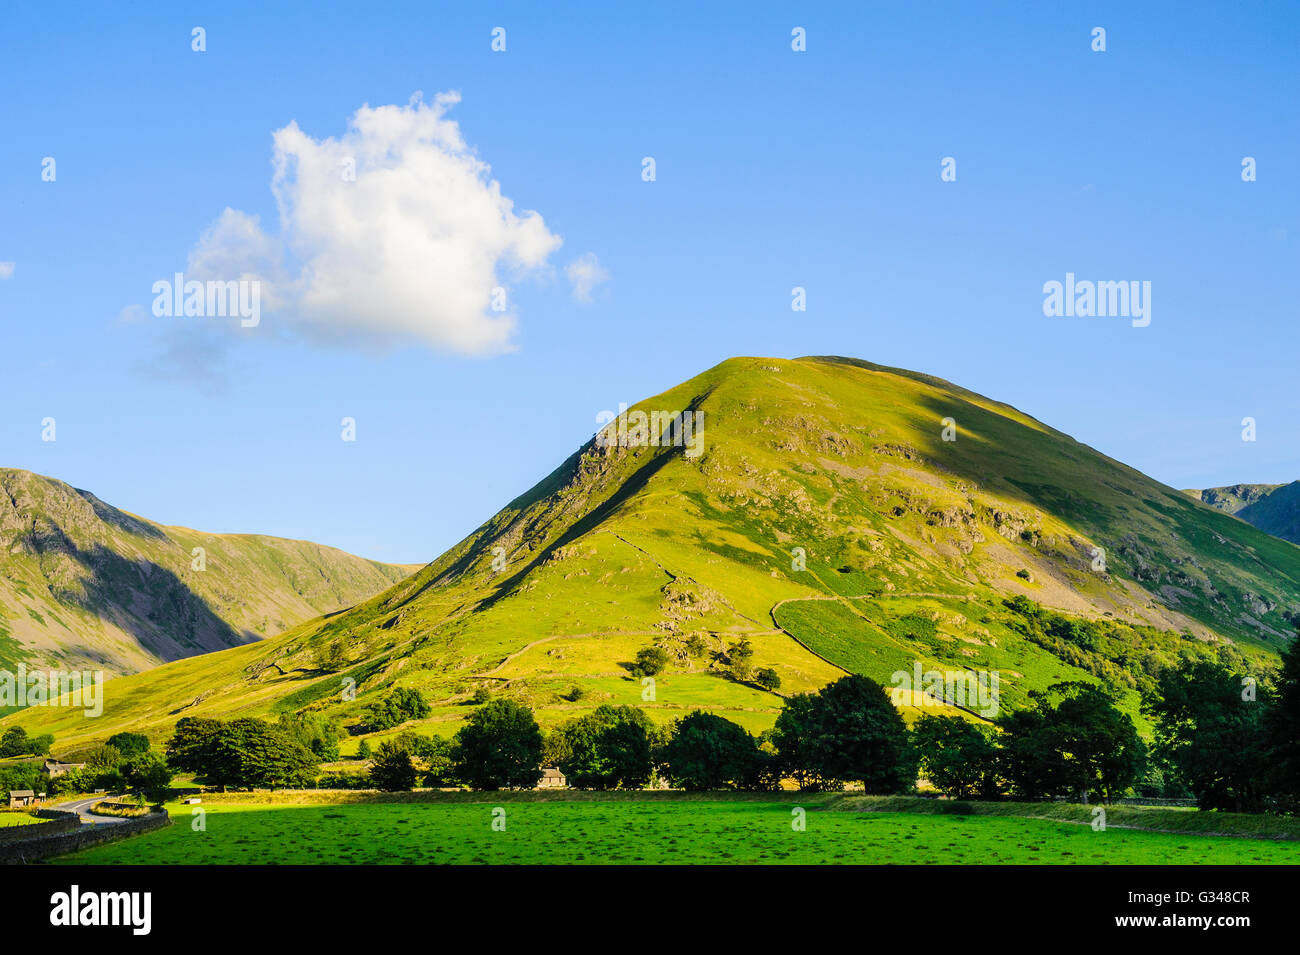 Hartsop Dodd in the eastern fells of the Lake District from the Patterdale valley - Stock Image